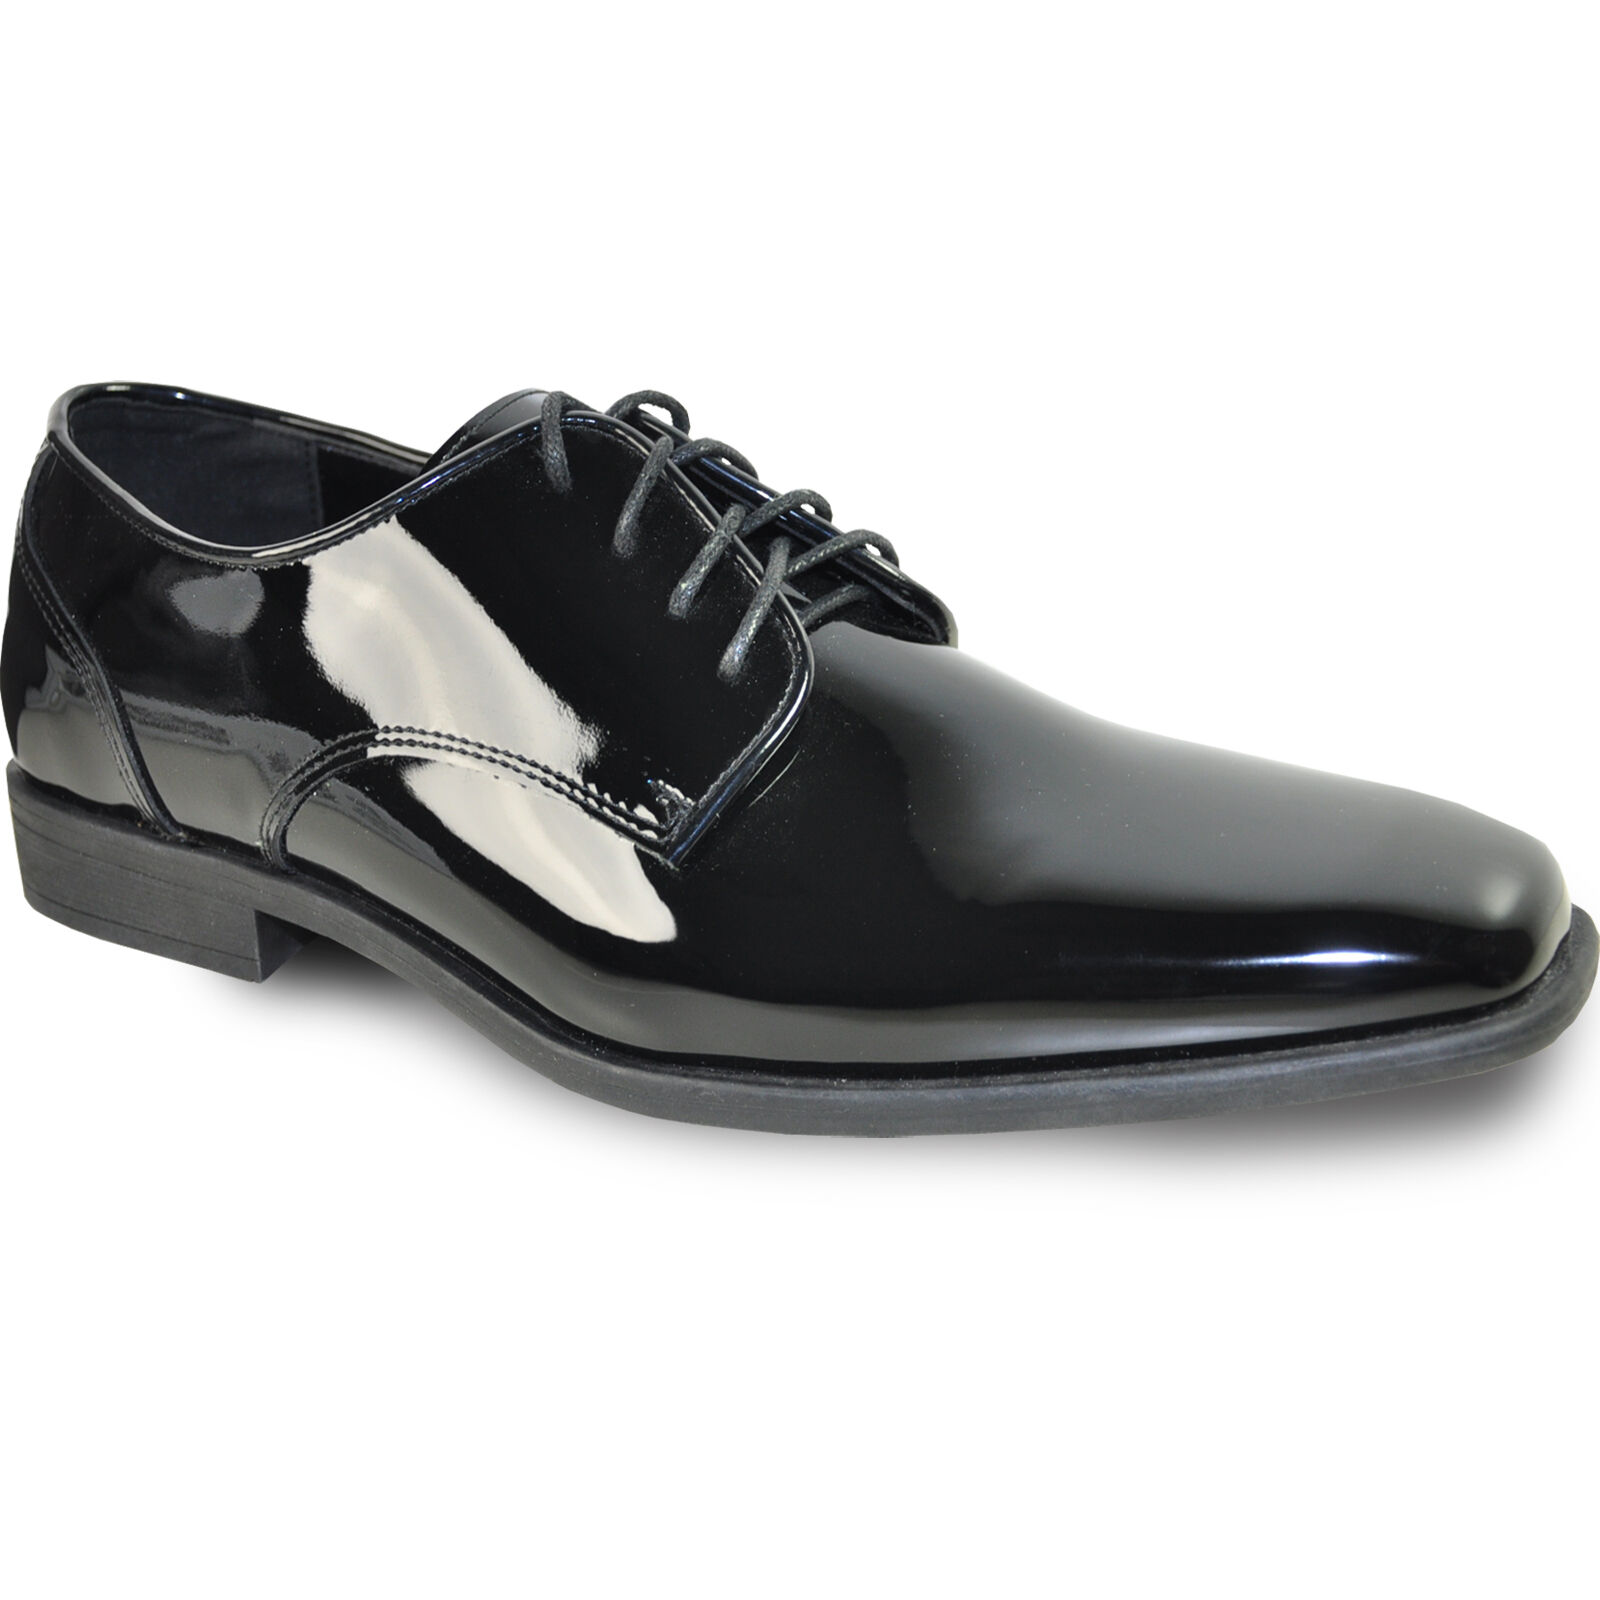 VANGELO New Men Dress Shoes TUX-2 Tuxedo For Formal Wedding Black Size Up to 18